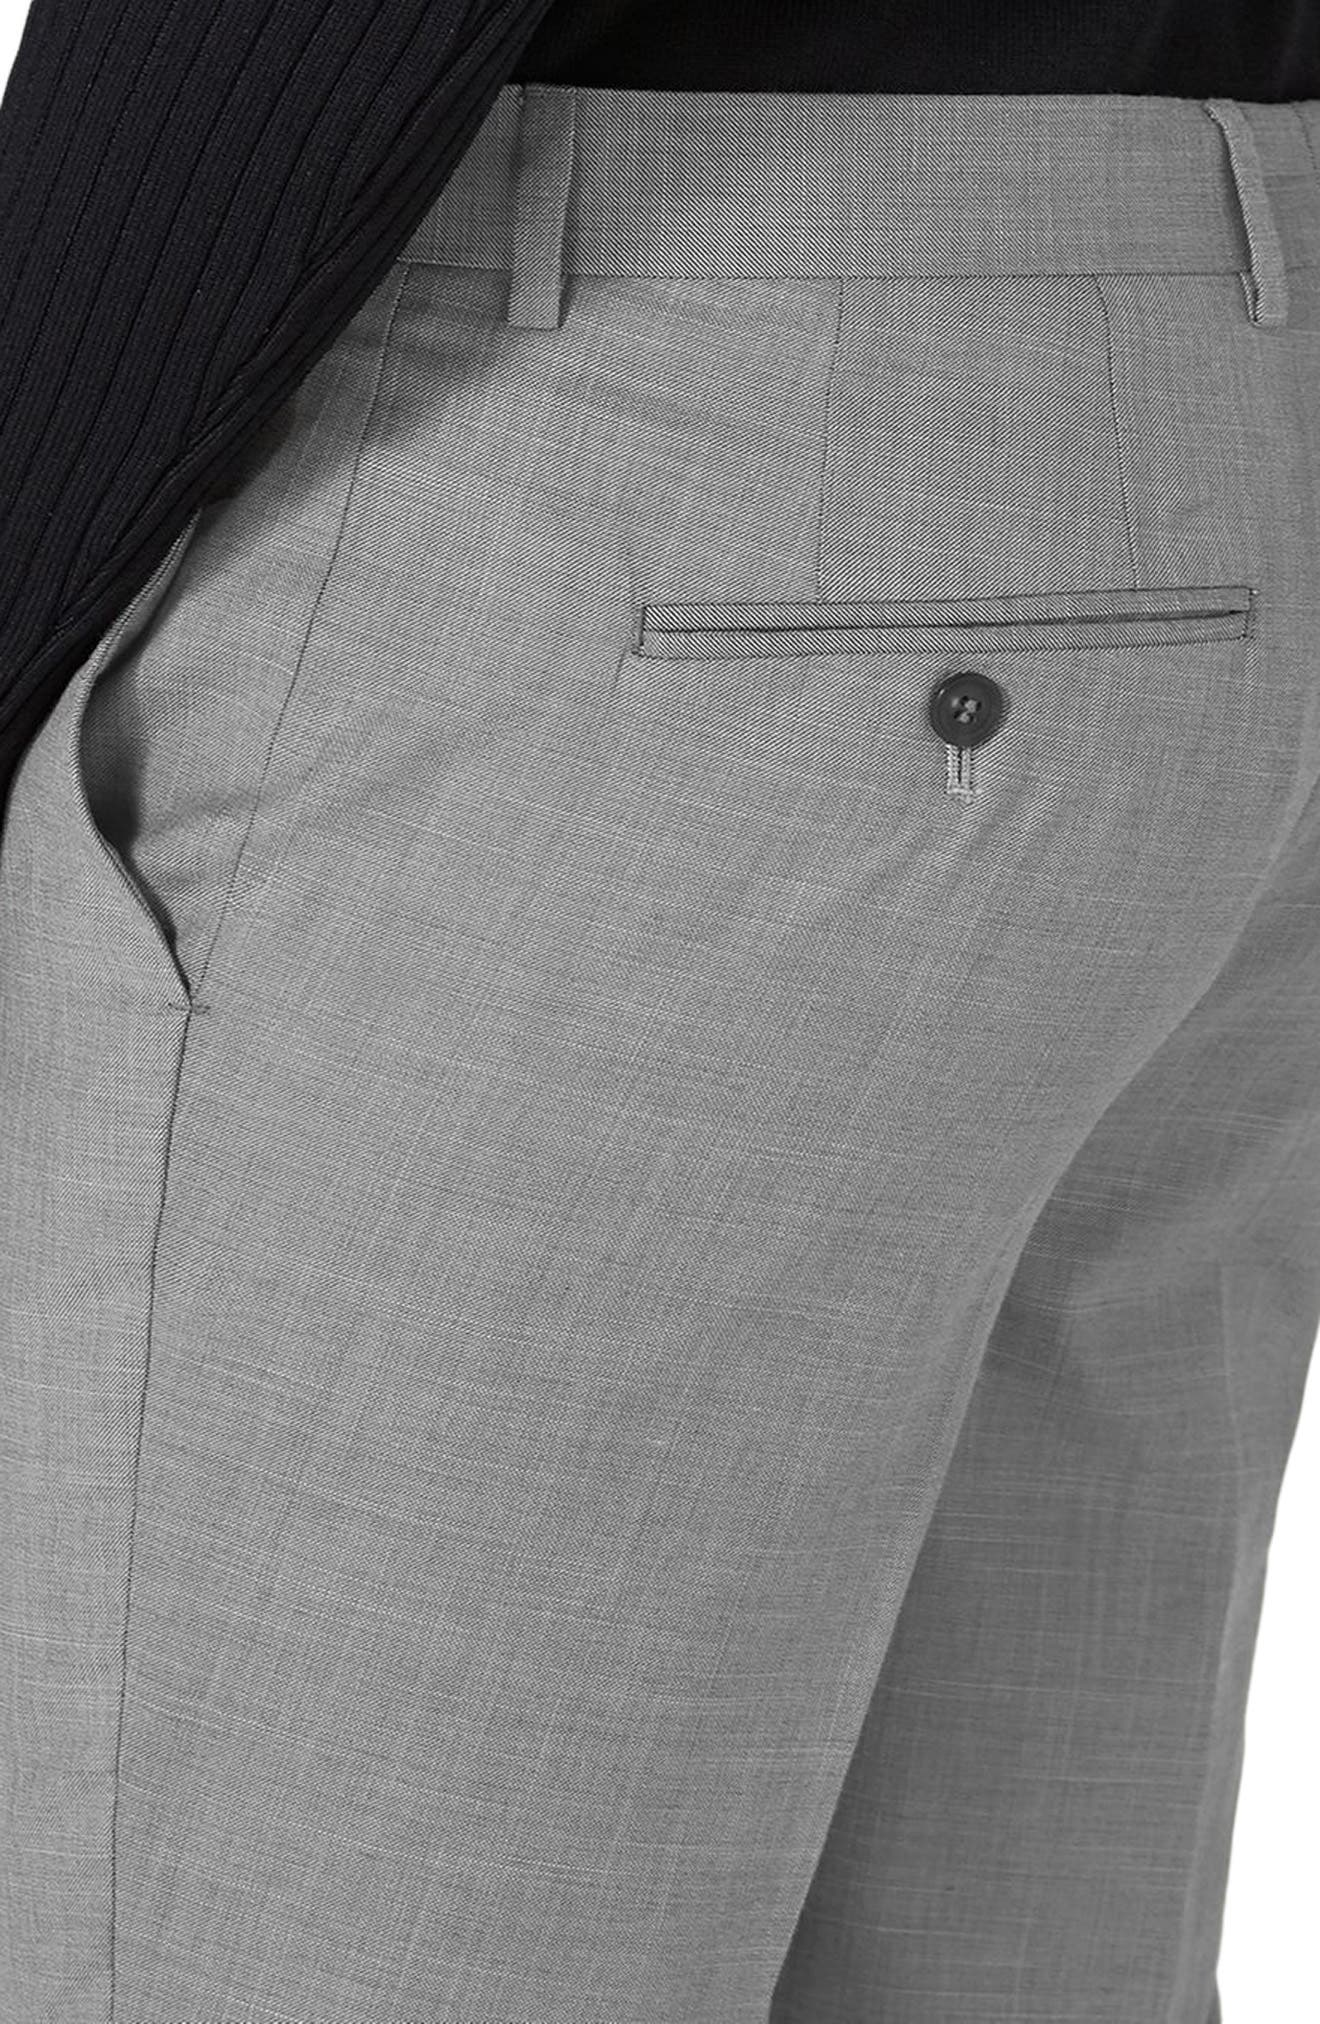 Como Skinny Fit Grey Suit Pants,                             Alternate thumbnail 3, color,                             GREY